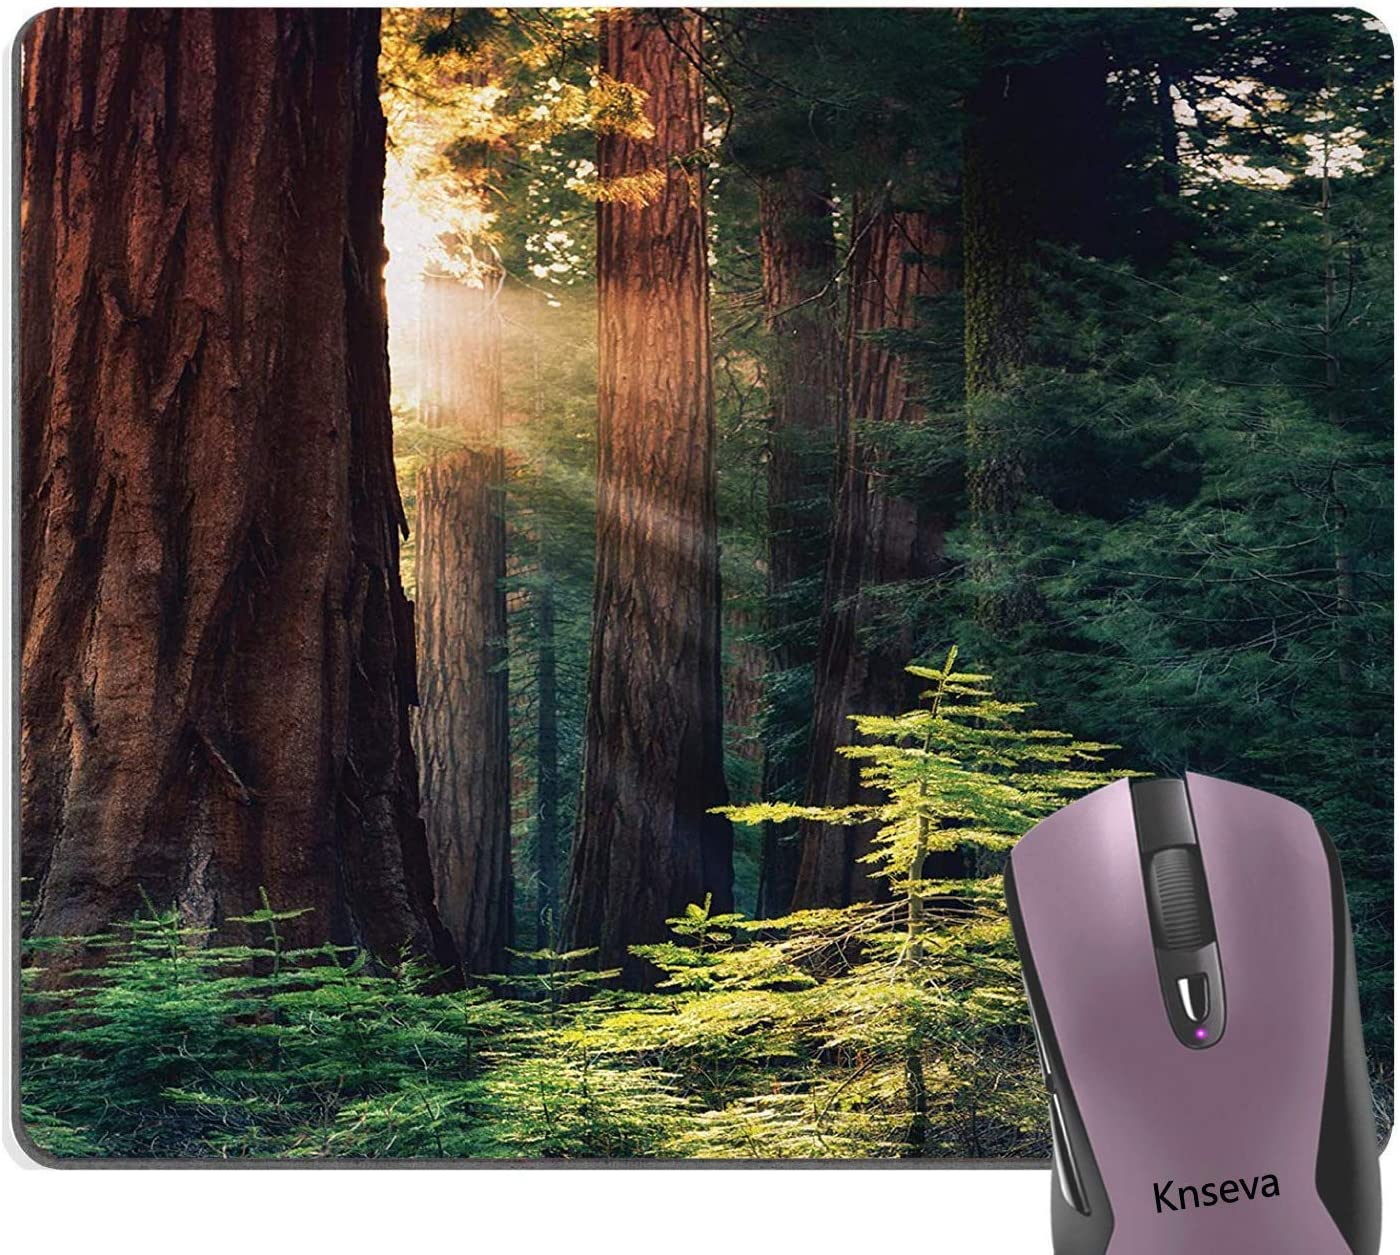 Morning Sunlight in Wilderness Yosemite Sierra Nevada United States Nature Mouse Pads 11.8-inch by 9.85-inch National Parks Thick Old Wood Forest Mouse Pad